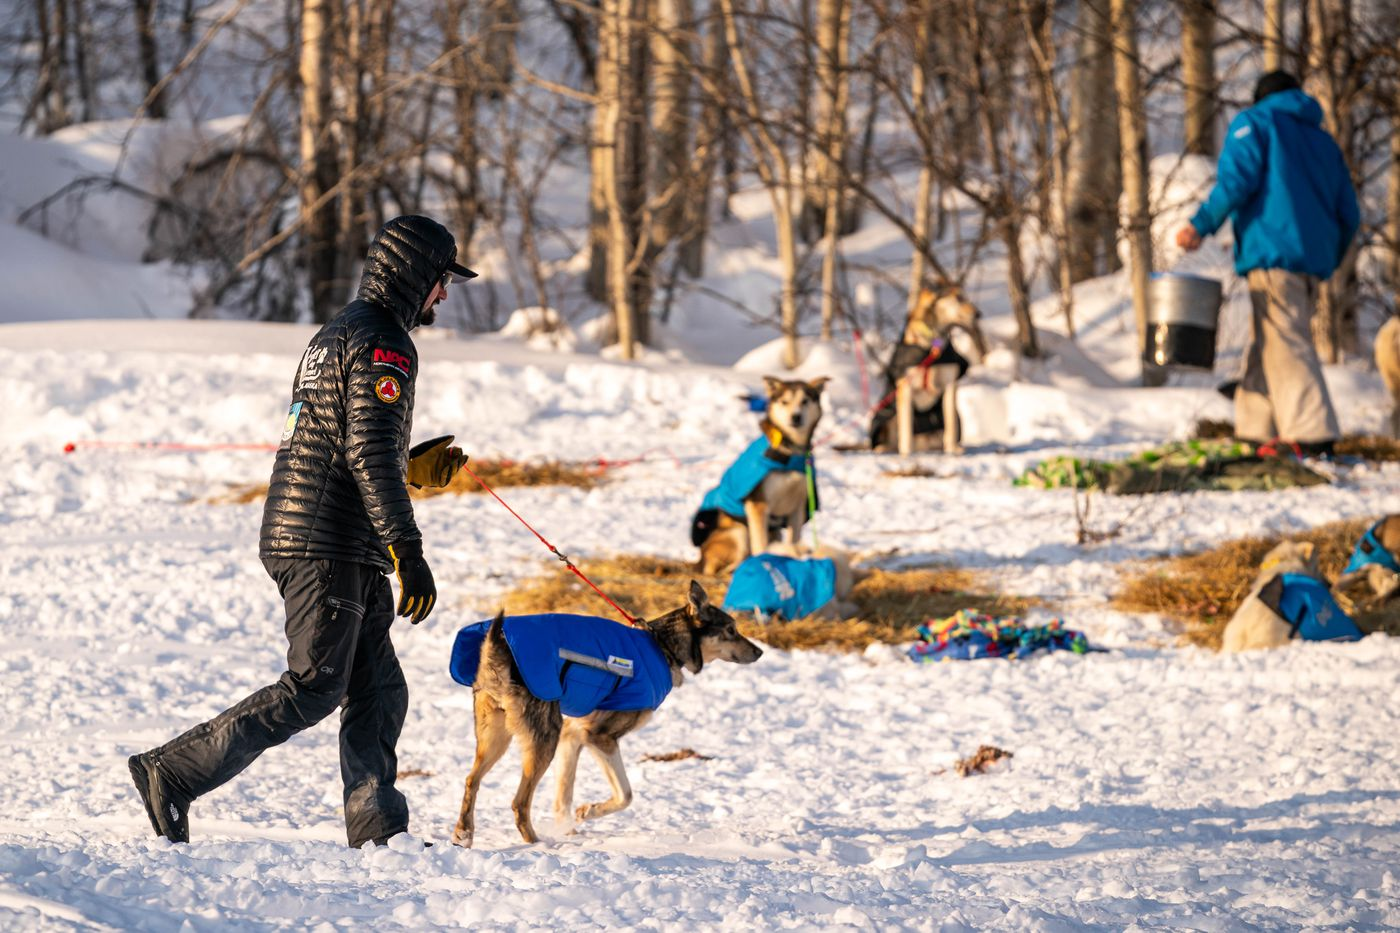 Peter Kaiser walks one of his dogs in Takotna on Wednesday, March 11, 2020 during the Iditarod Trail Sled Dog Race. (Loren Holmes / ADN)